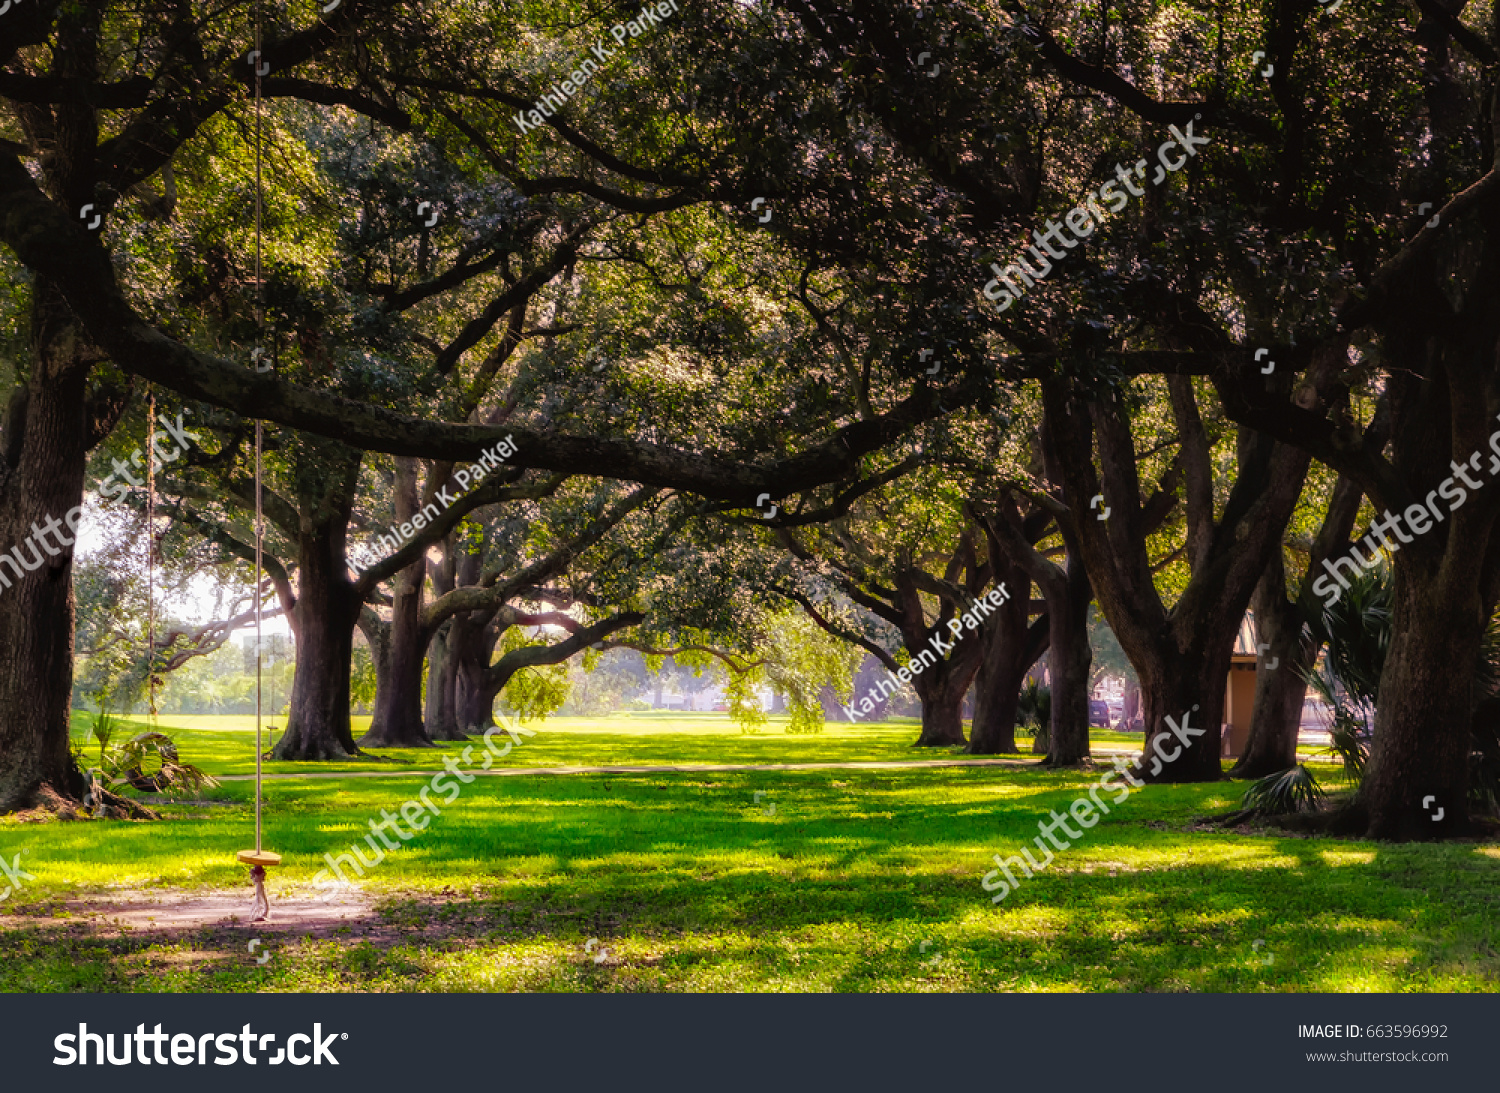 Live Oak Tree Tunnel New Orleans Stock Photo (Royalty Free ...